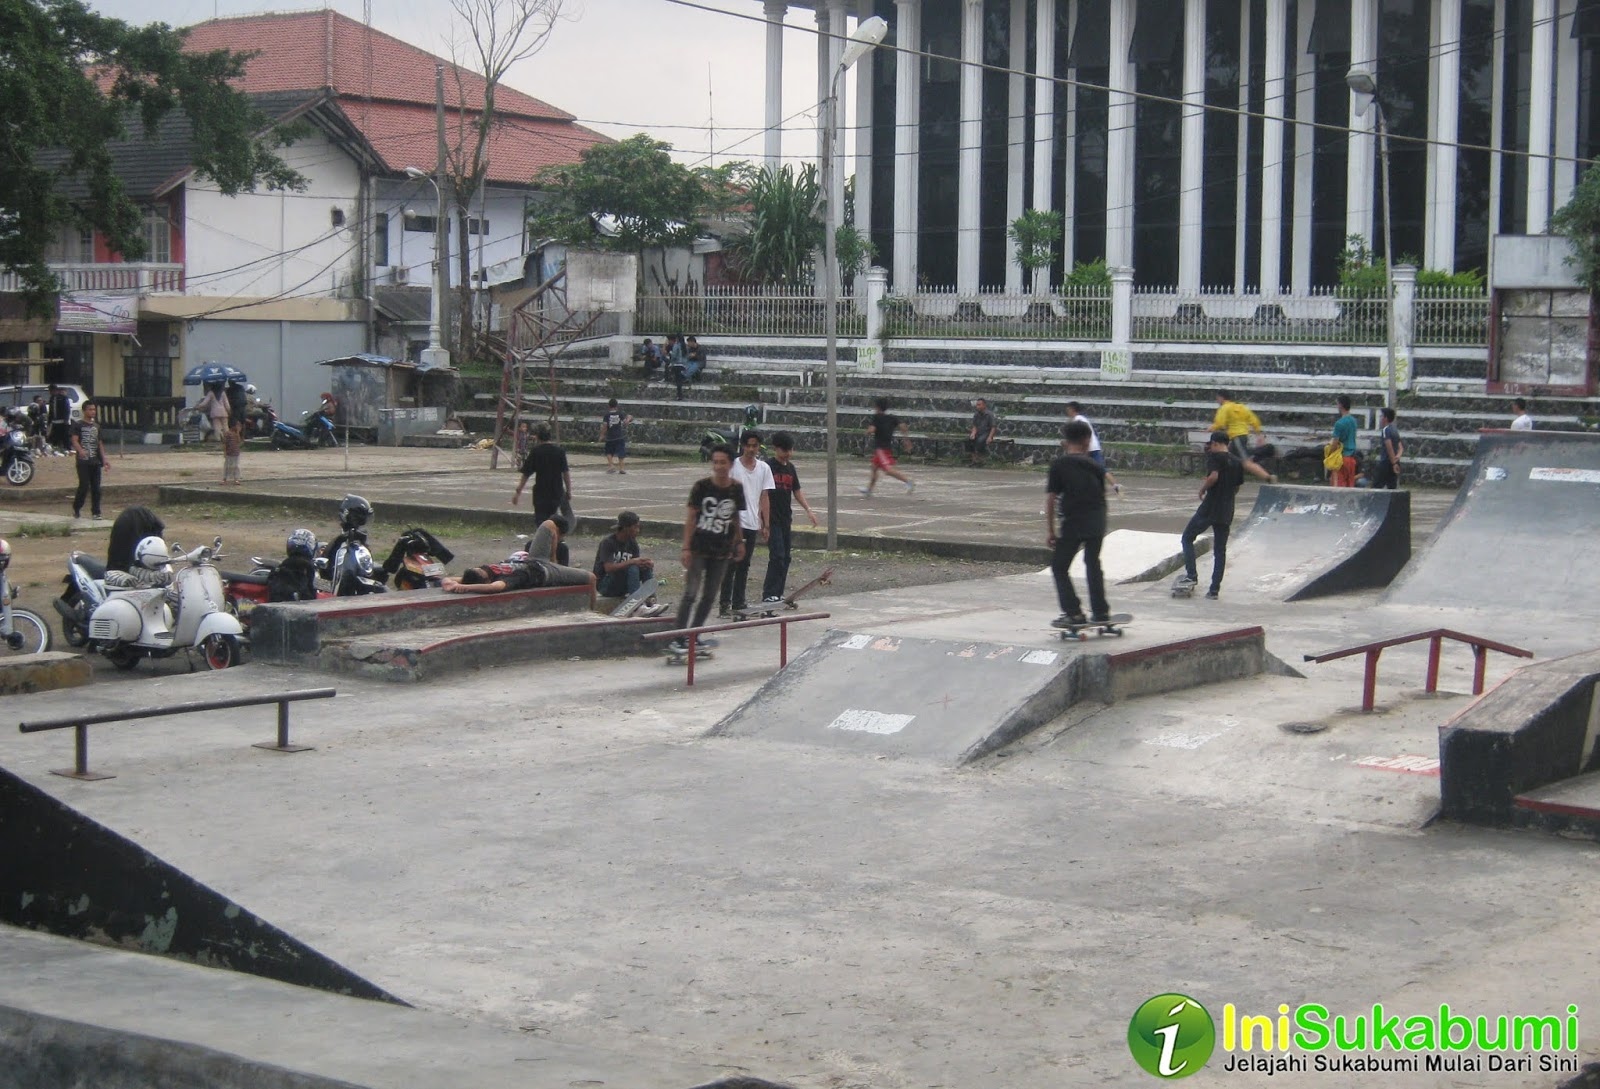 Merdeka Skateboard Team